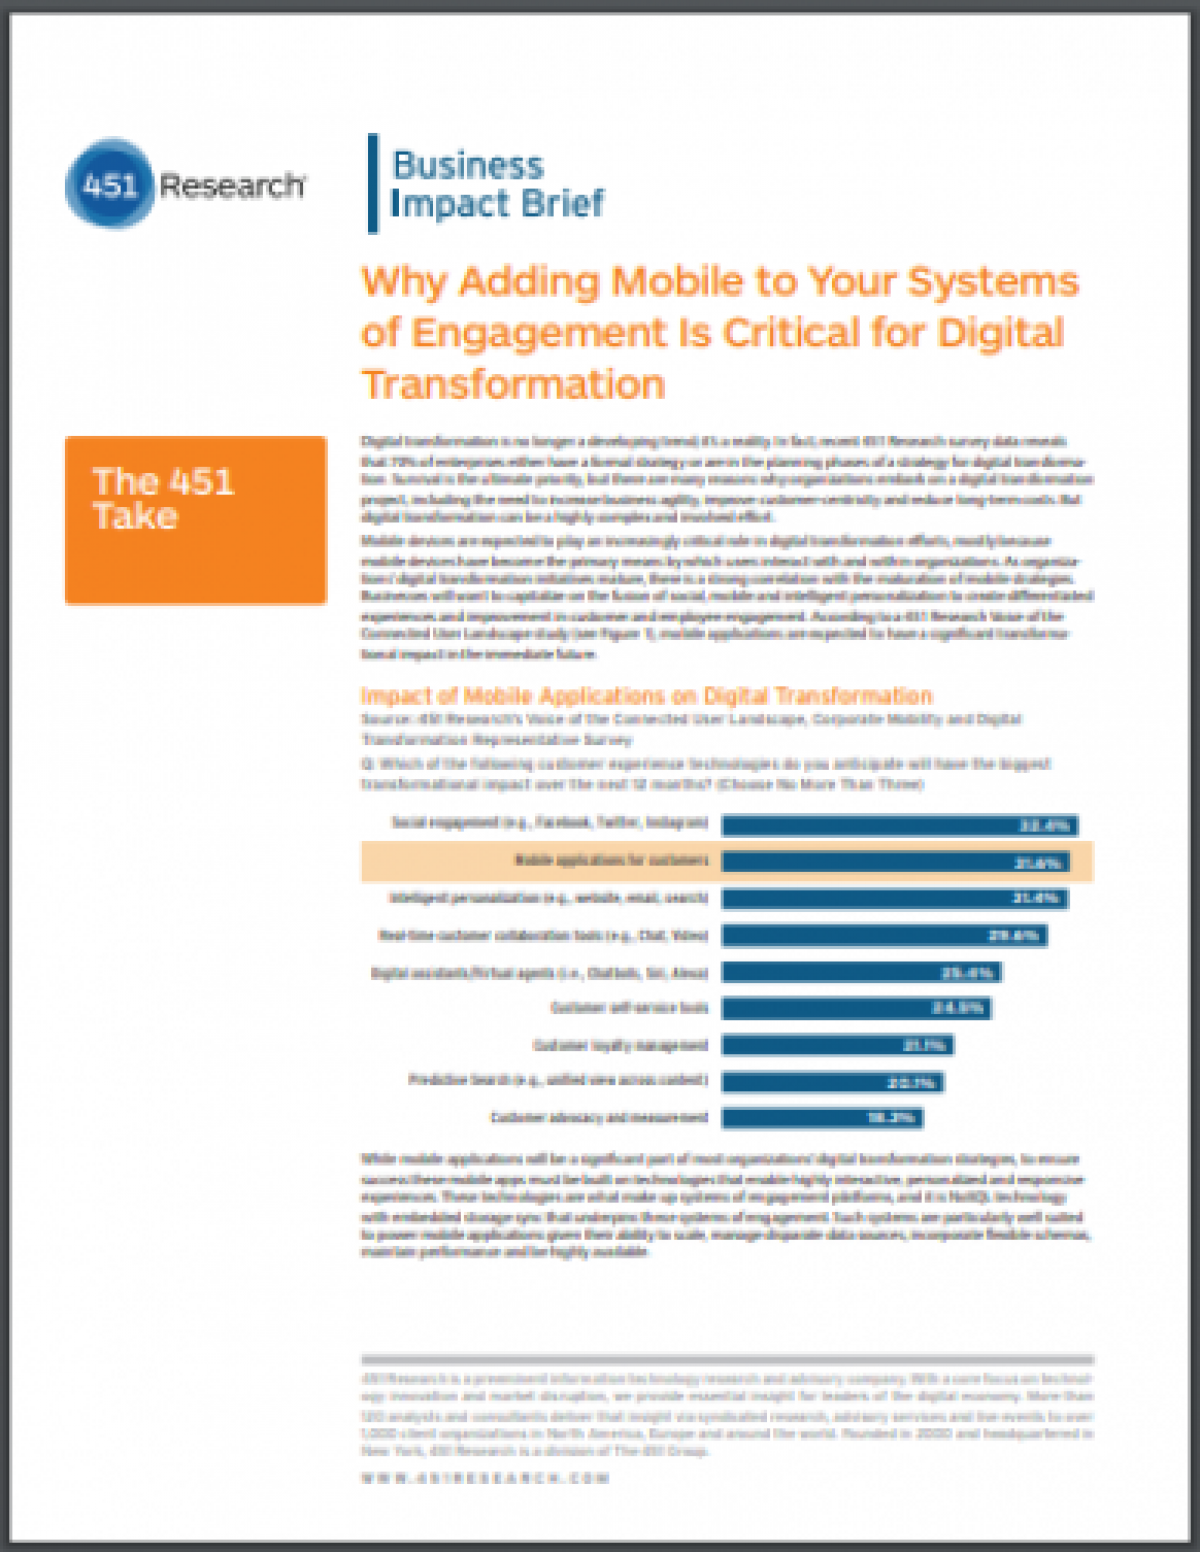 Why Adding Mobile to Your Systems of Engagement Is Critical for Digital Transformation